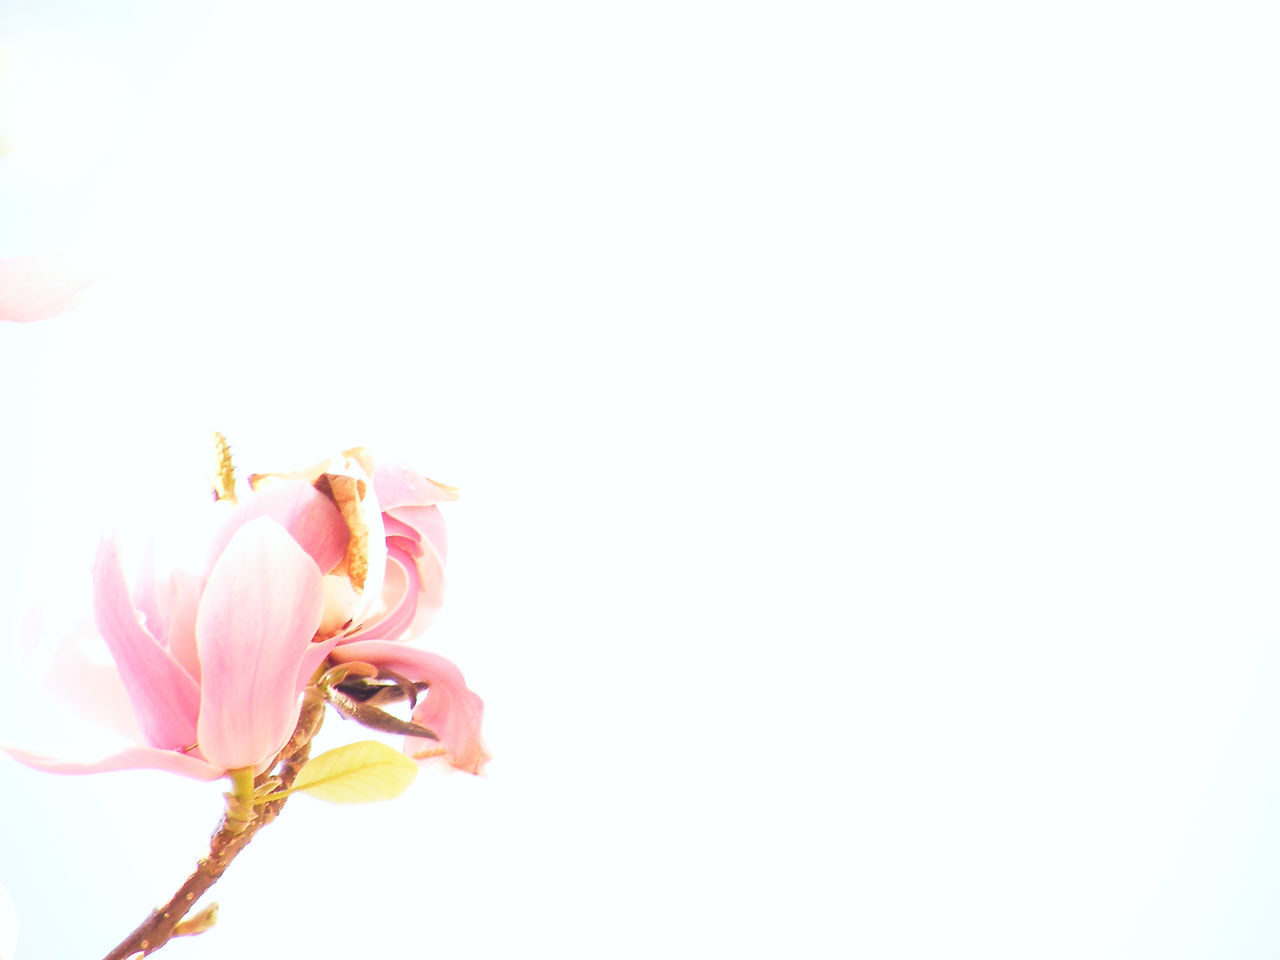 Magnolia Animal Themes Beauty In Nature Blossom Close-up Copy Space Day Flower Flower Head Fragility Freshness Growth Nature No People Outdoors Petal Pink Color Springtime Stamen Studio Shot White Background